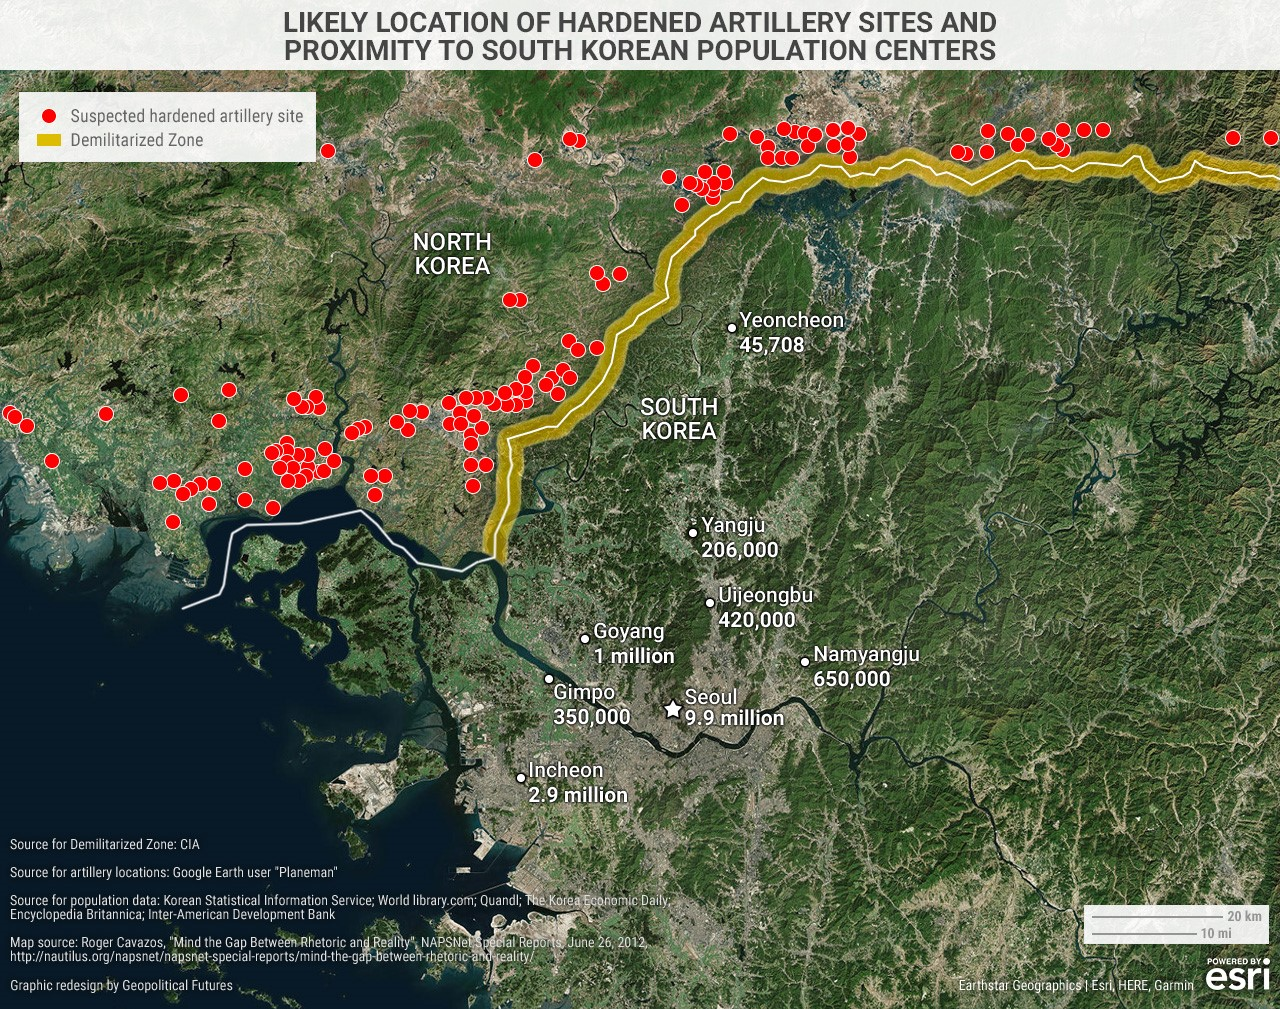 Here's A Closer Look At North Korea's Artillery Capabilities ... on aleutian chain map, pankisi gorge map, bridge of no return, ohio renaissance festival map, camp greaves map, south korea map, aftermath of the korean war, korean border, camp bonifas, buffer zone, division of korea, korean demilitarized zone, north china map, neutral nations supervisory commission, baltimore metro area map, korean wall, canadian maritimes map, saint lawrence seaway map, northern limit line, korean reunification, military demarcation line, mona passage map, camp pelham korea map, north korea map, korean peninsula, joint security area, south polar map, axe murder incident, pine ridge indian reservation map, vietnam border map, third tunnel of aggression, army bases in korea map, kij�ng-dong,